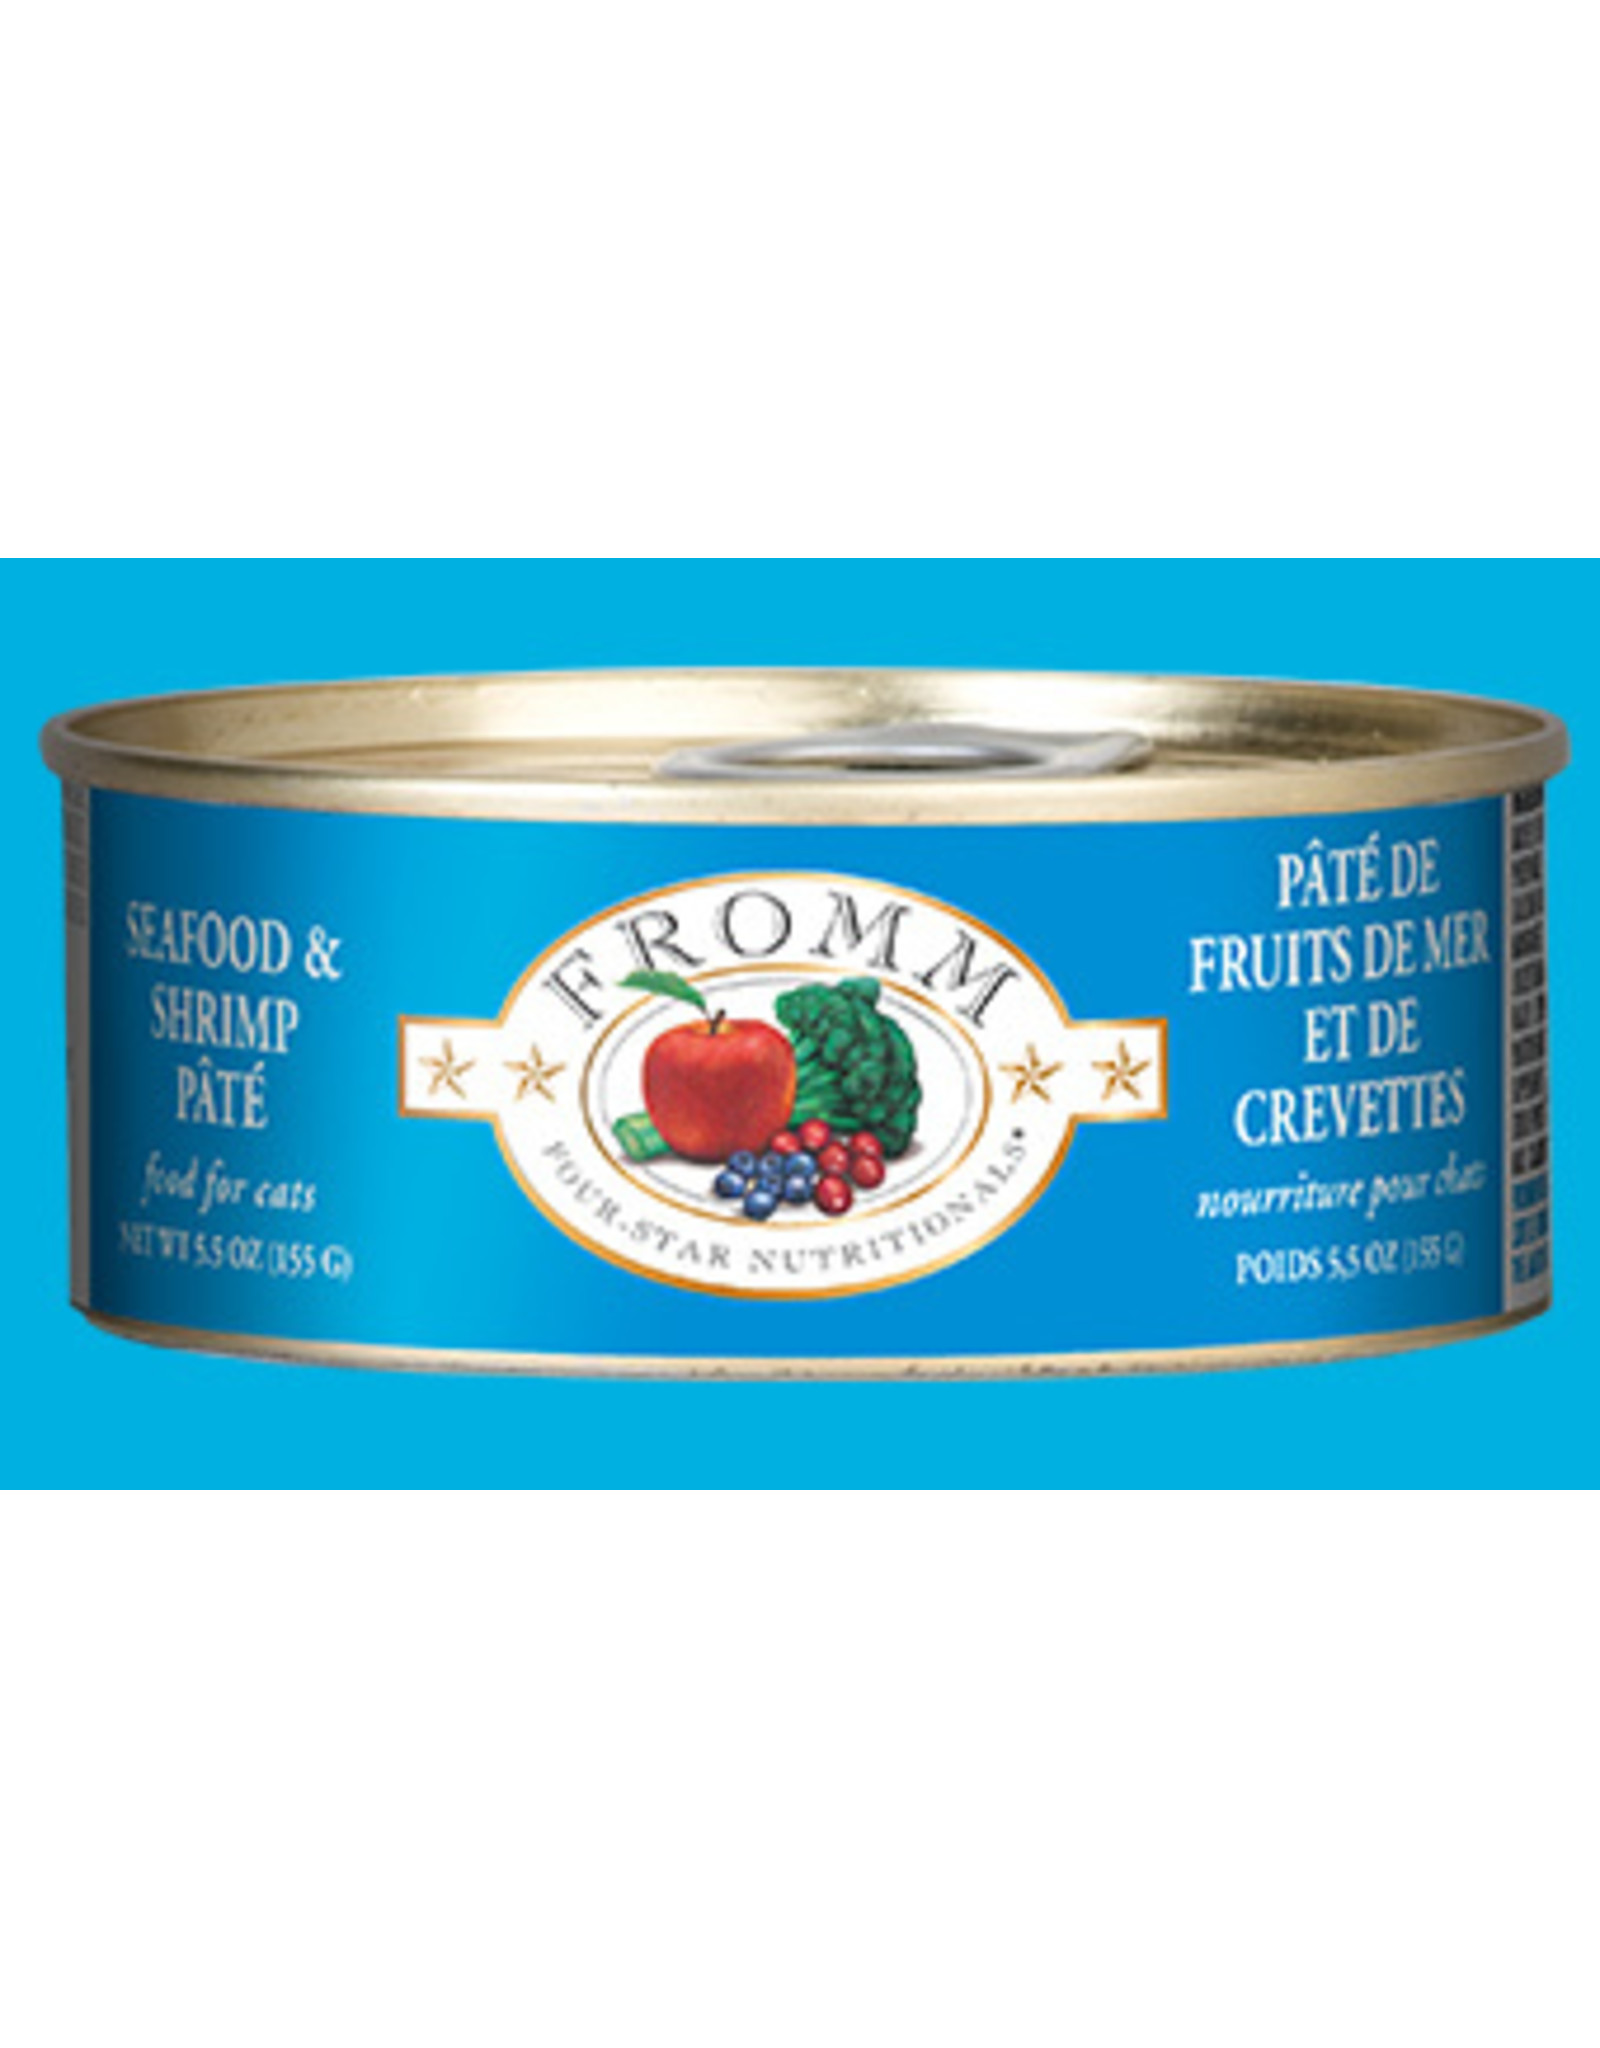 Fromm Fromm Cat Seafood & Shrimp Pate 5.5oz